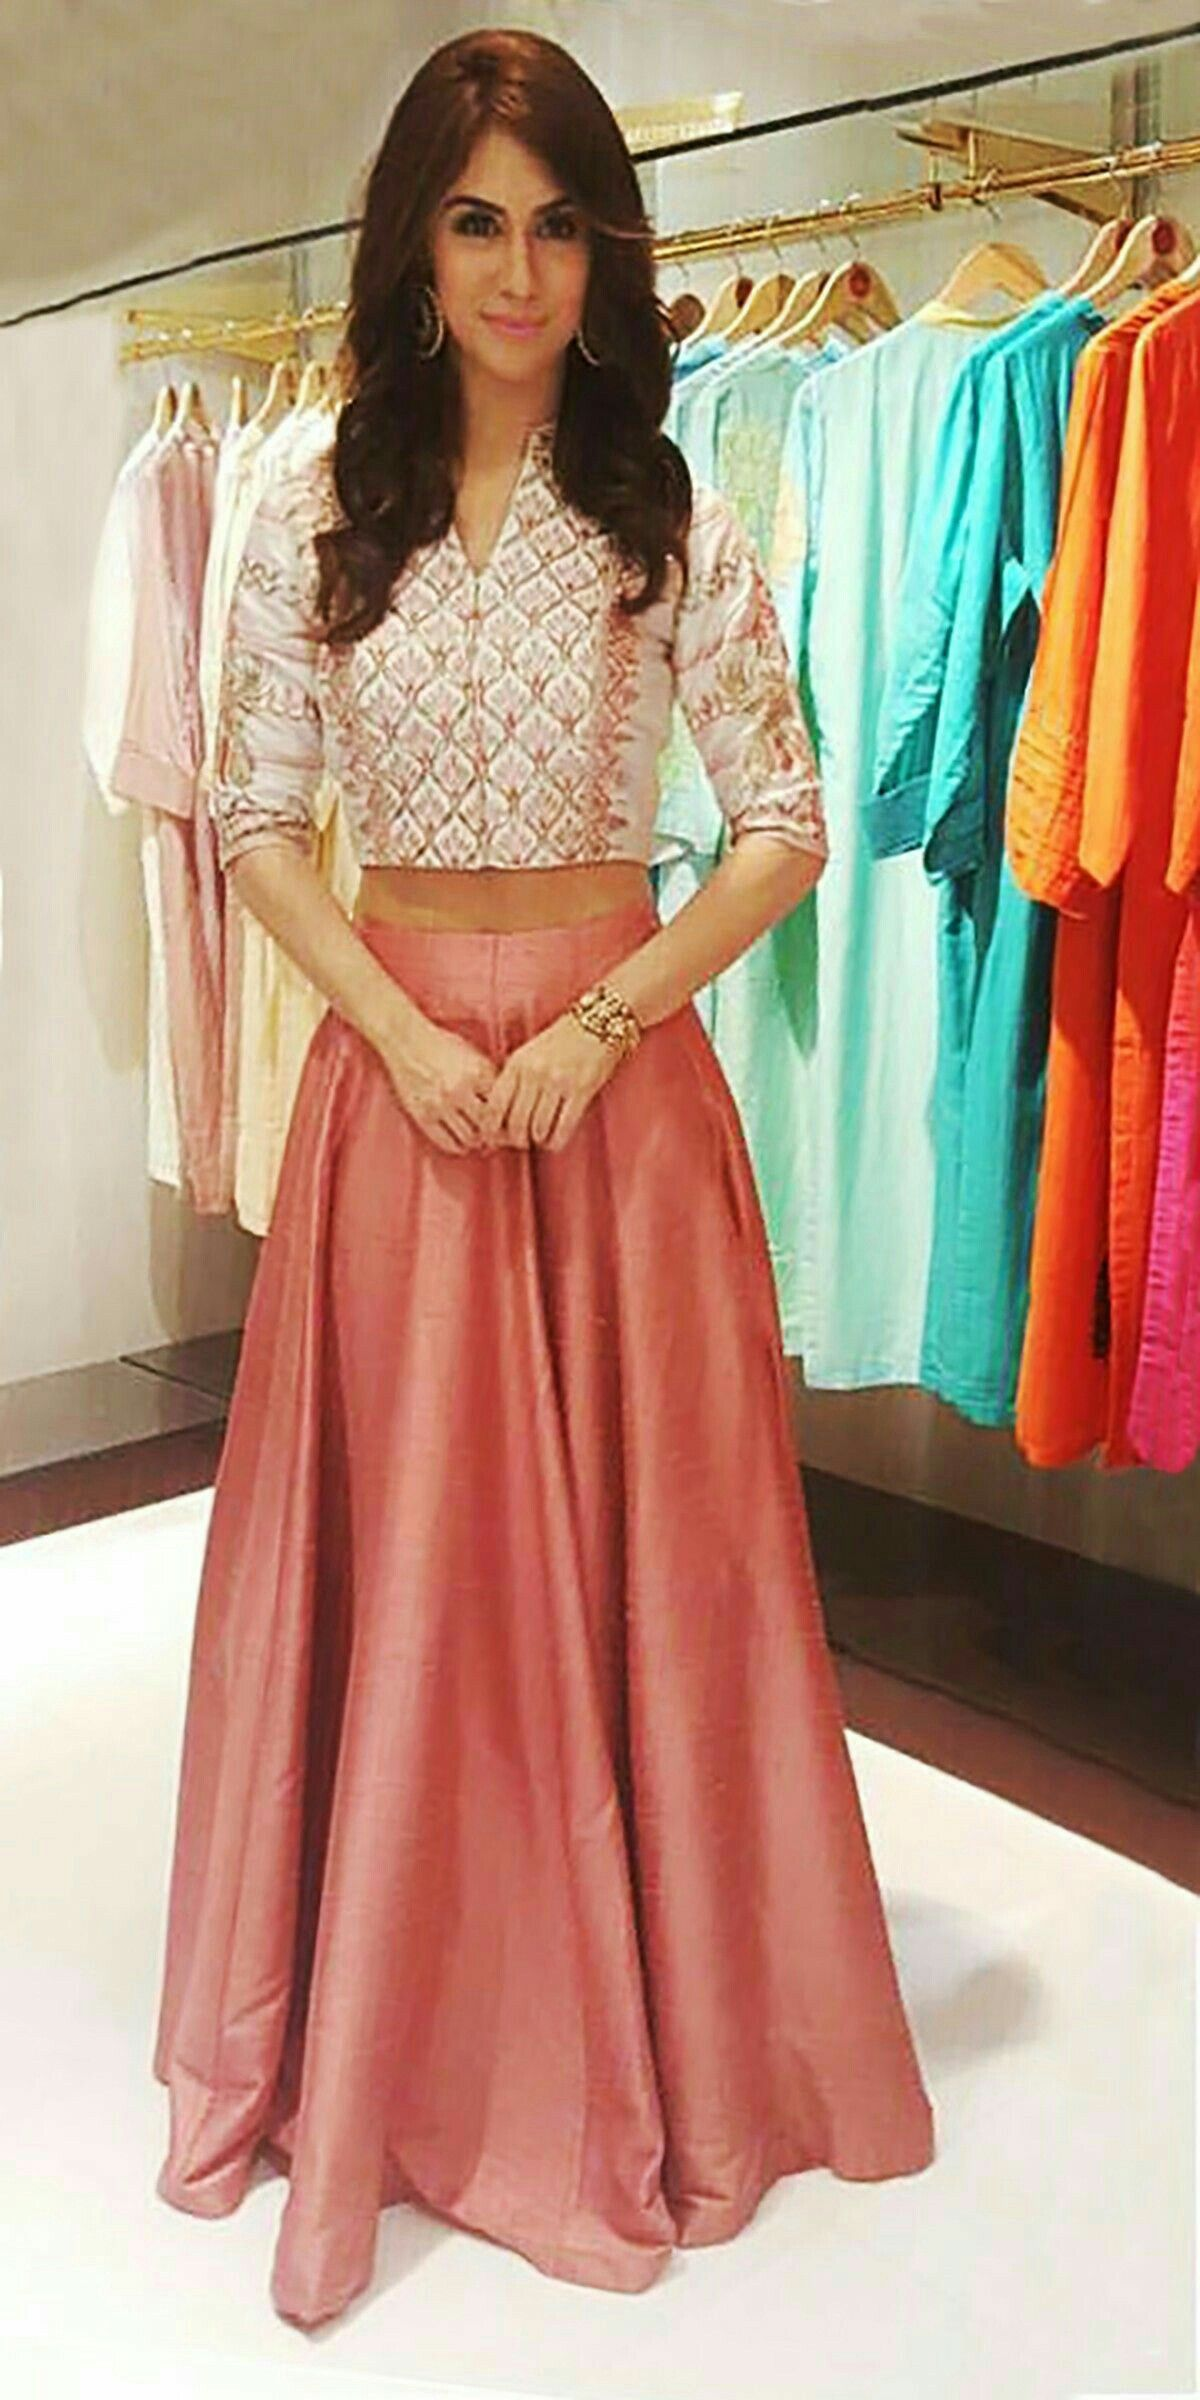 Crop top Indian outfits, Indian skirt, Indian fashion